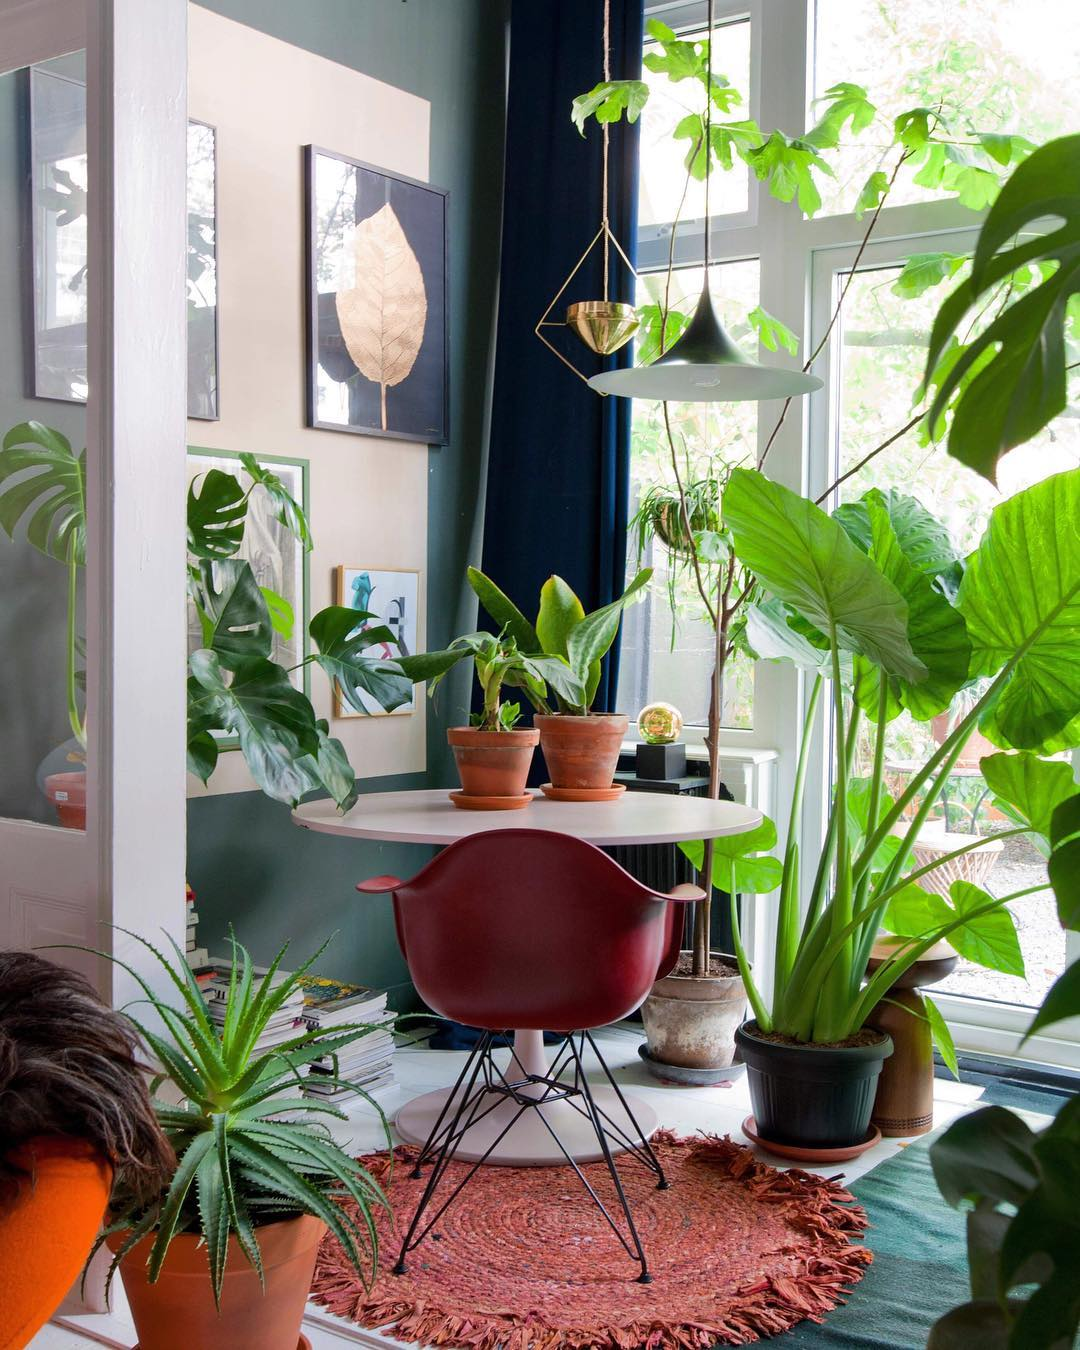 Théo Bert Pot The nice Stuff Collector urban jungle bureau - blog déco - clem around the corner